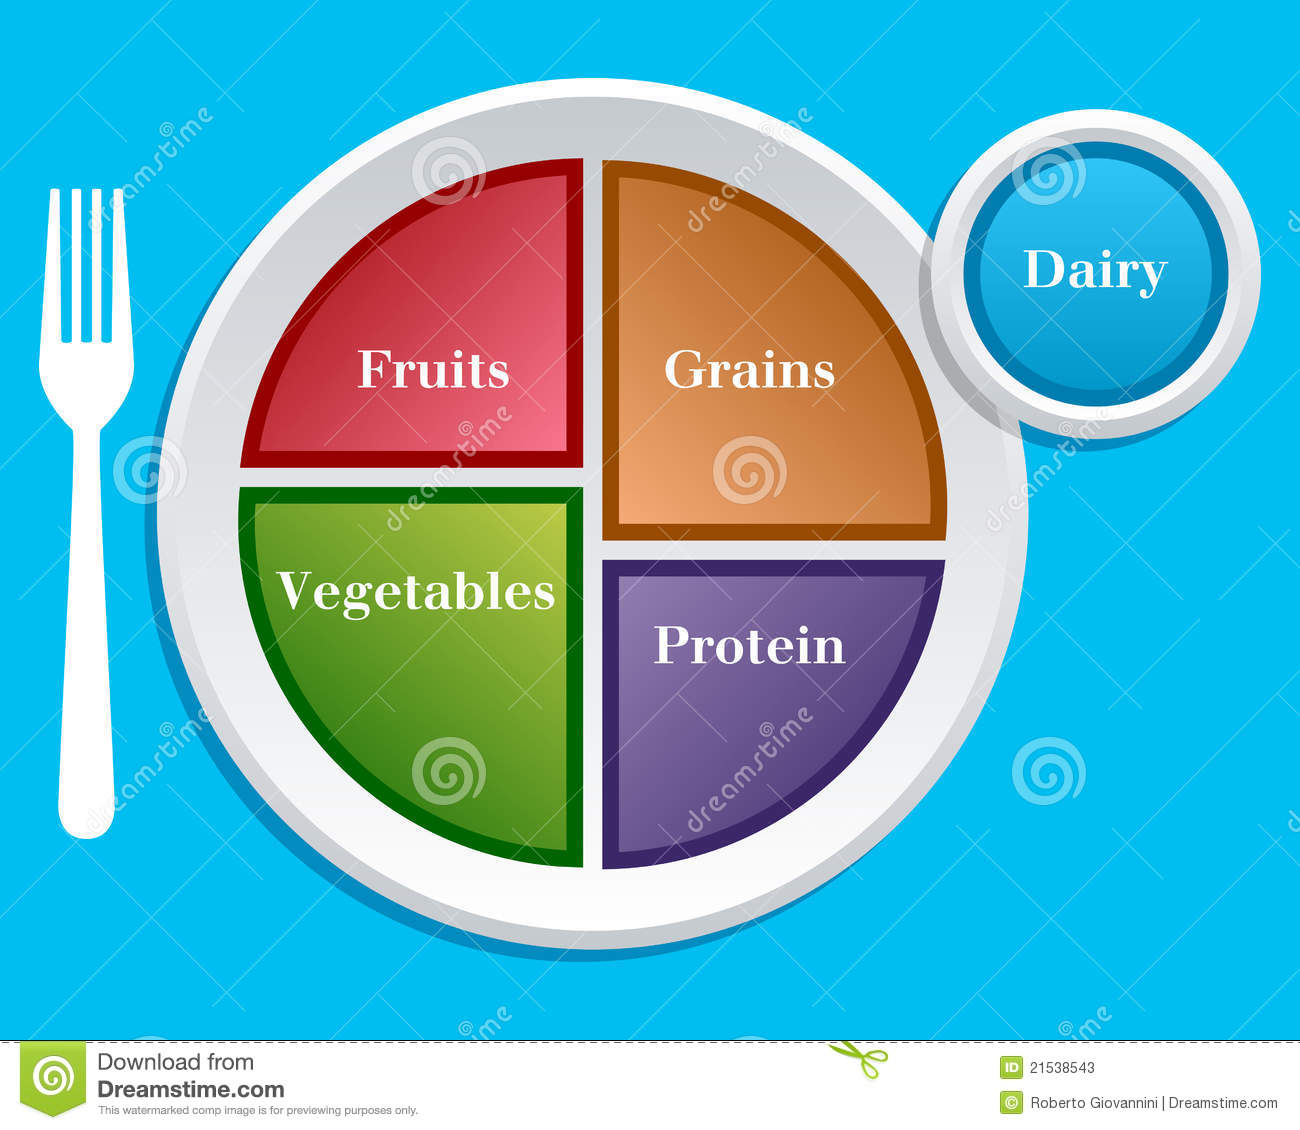 Stock Photos My Plate Diet Nutrition Guide Image21538543 on Myplate Graphic